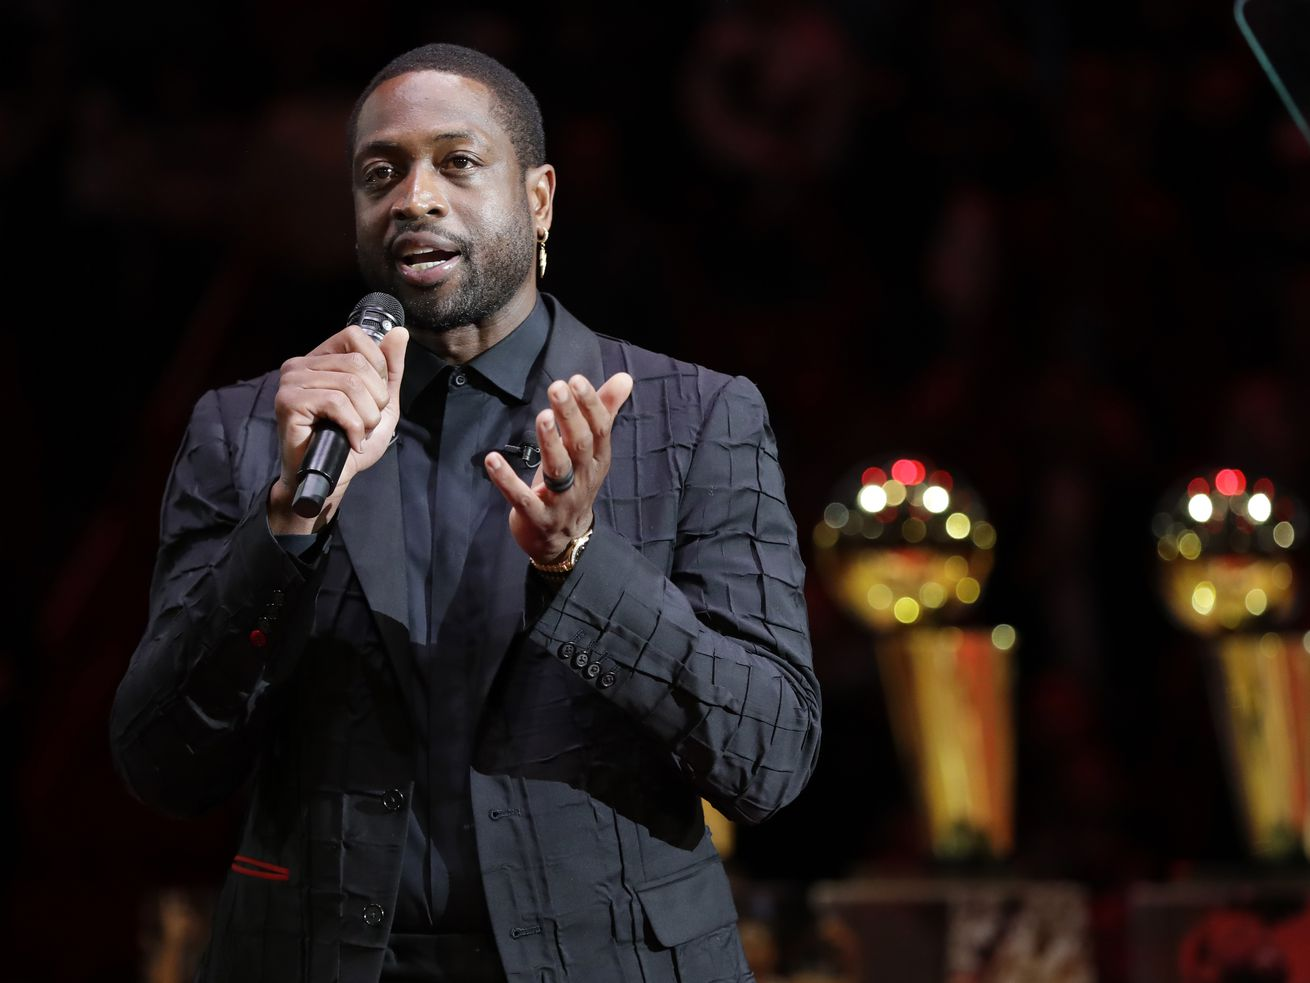 Former NBA champion and All-Star Dwyane Wade has become a member of the Utah Jazz ownership group.